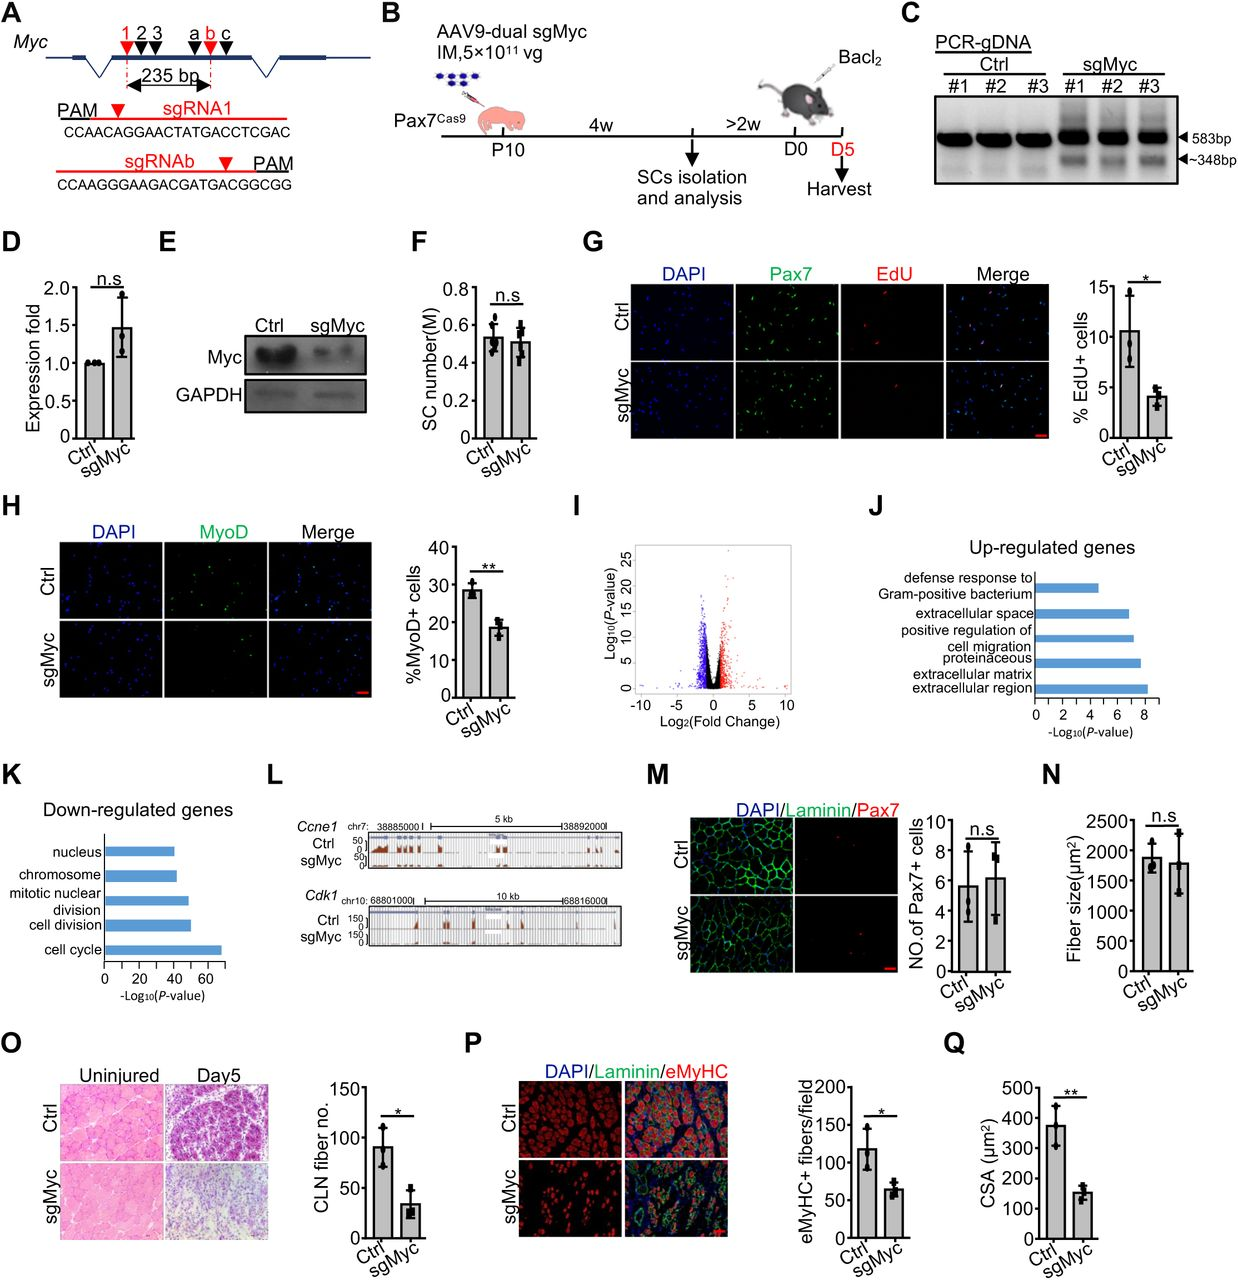 CRISPR/Cas9/AAV9 mediated genome editing of Myc hindered SC activation and muscle regeneration. ( A ) Design and selection of sgRNAs targeting Myc locus. SgRNA1 and sgRNAb were selected to delete a 235 bp of exon 2. ( B ) Schematic illustration of the experimental design for in vivo genome editing of Myc locus and analysis of its effect on SCs and muscle regeneration. Pax7 Cas9 mice were administrated with high dose of control or AAV9-dual sgMyc virus at P10 and SCs were isolated four weeks later for analysis. To assay for muscle regeneration, BaCl 2 was intramuscularly injected at the TA region of one leg at least six weeks after AAV9 virus administration. The injected muscle was harvested five days post injury and subject to analysis. ( C ) Genomic DNAs were isolated from the above sorted SCs and PCR analysis was performed to test the cleavage efficiency. Wide type (583 bp) and cleaved fragments (∼348 bp) are shown by arrowheads. ( D ) The above SCs were cultured for 24 hrs and relative expression of Myc mRNAs was detected by qRT-PCR. The qRT-PCR data were normalized to 18S mRNA (n=3 in each group). ( E ) Myc protein level in the above SCs was examined by Western blot. GAPDH was used as loading control. ( F ) The number of SCs isolated from the above control or dual sgMyc virus treated mice (n = 6 in each group). M: million. ( G ) The above FISCs were labeled with EdU for 24 hrs and the percentage of EdU positive cells was quantified (n = 3 in each group). Scale bar, 50 μm. ( H ) The above FISCs were IF stained for MyoD expression four hrs after seeding (Left) and the percentage of positively stained cells was quantified (Right) (n = 3 in each group). Scale bar, 50 μm. ( I ) RNAs were isolated from the above SCs cultured for 24 hrs and subject to RNA-seq analysis. Differentially expressed genes were identified with blue and red dots representing down- or up-regulated genes, respectively. ( J - K ) GO analysis of the above up- or down-regulated genes was performed 